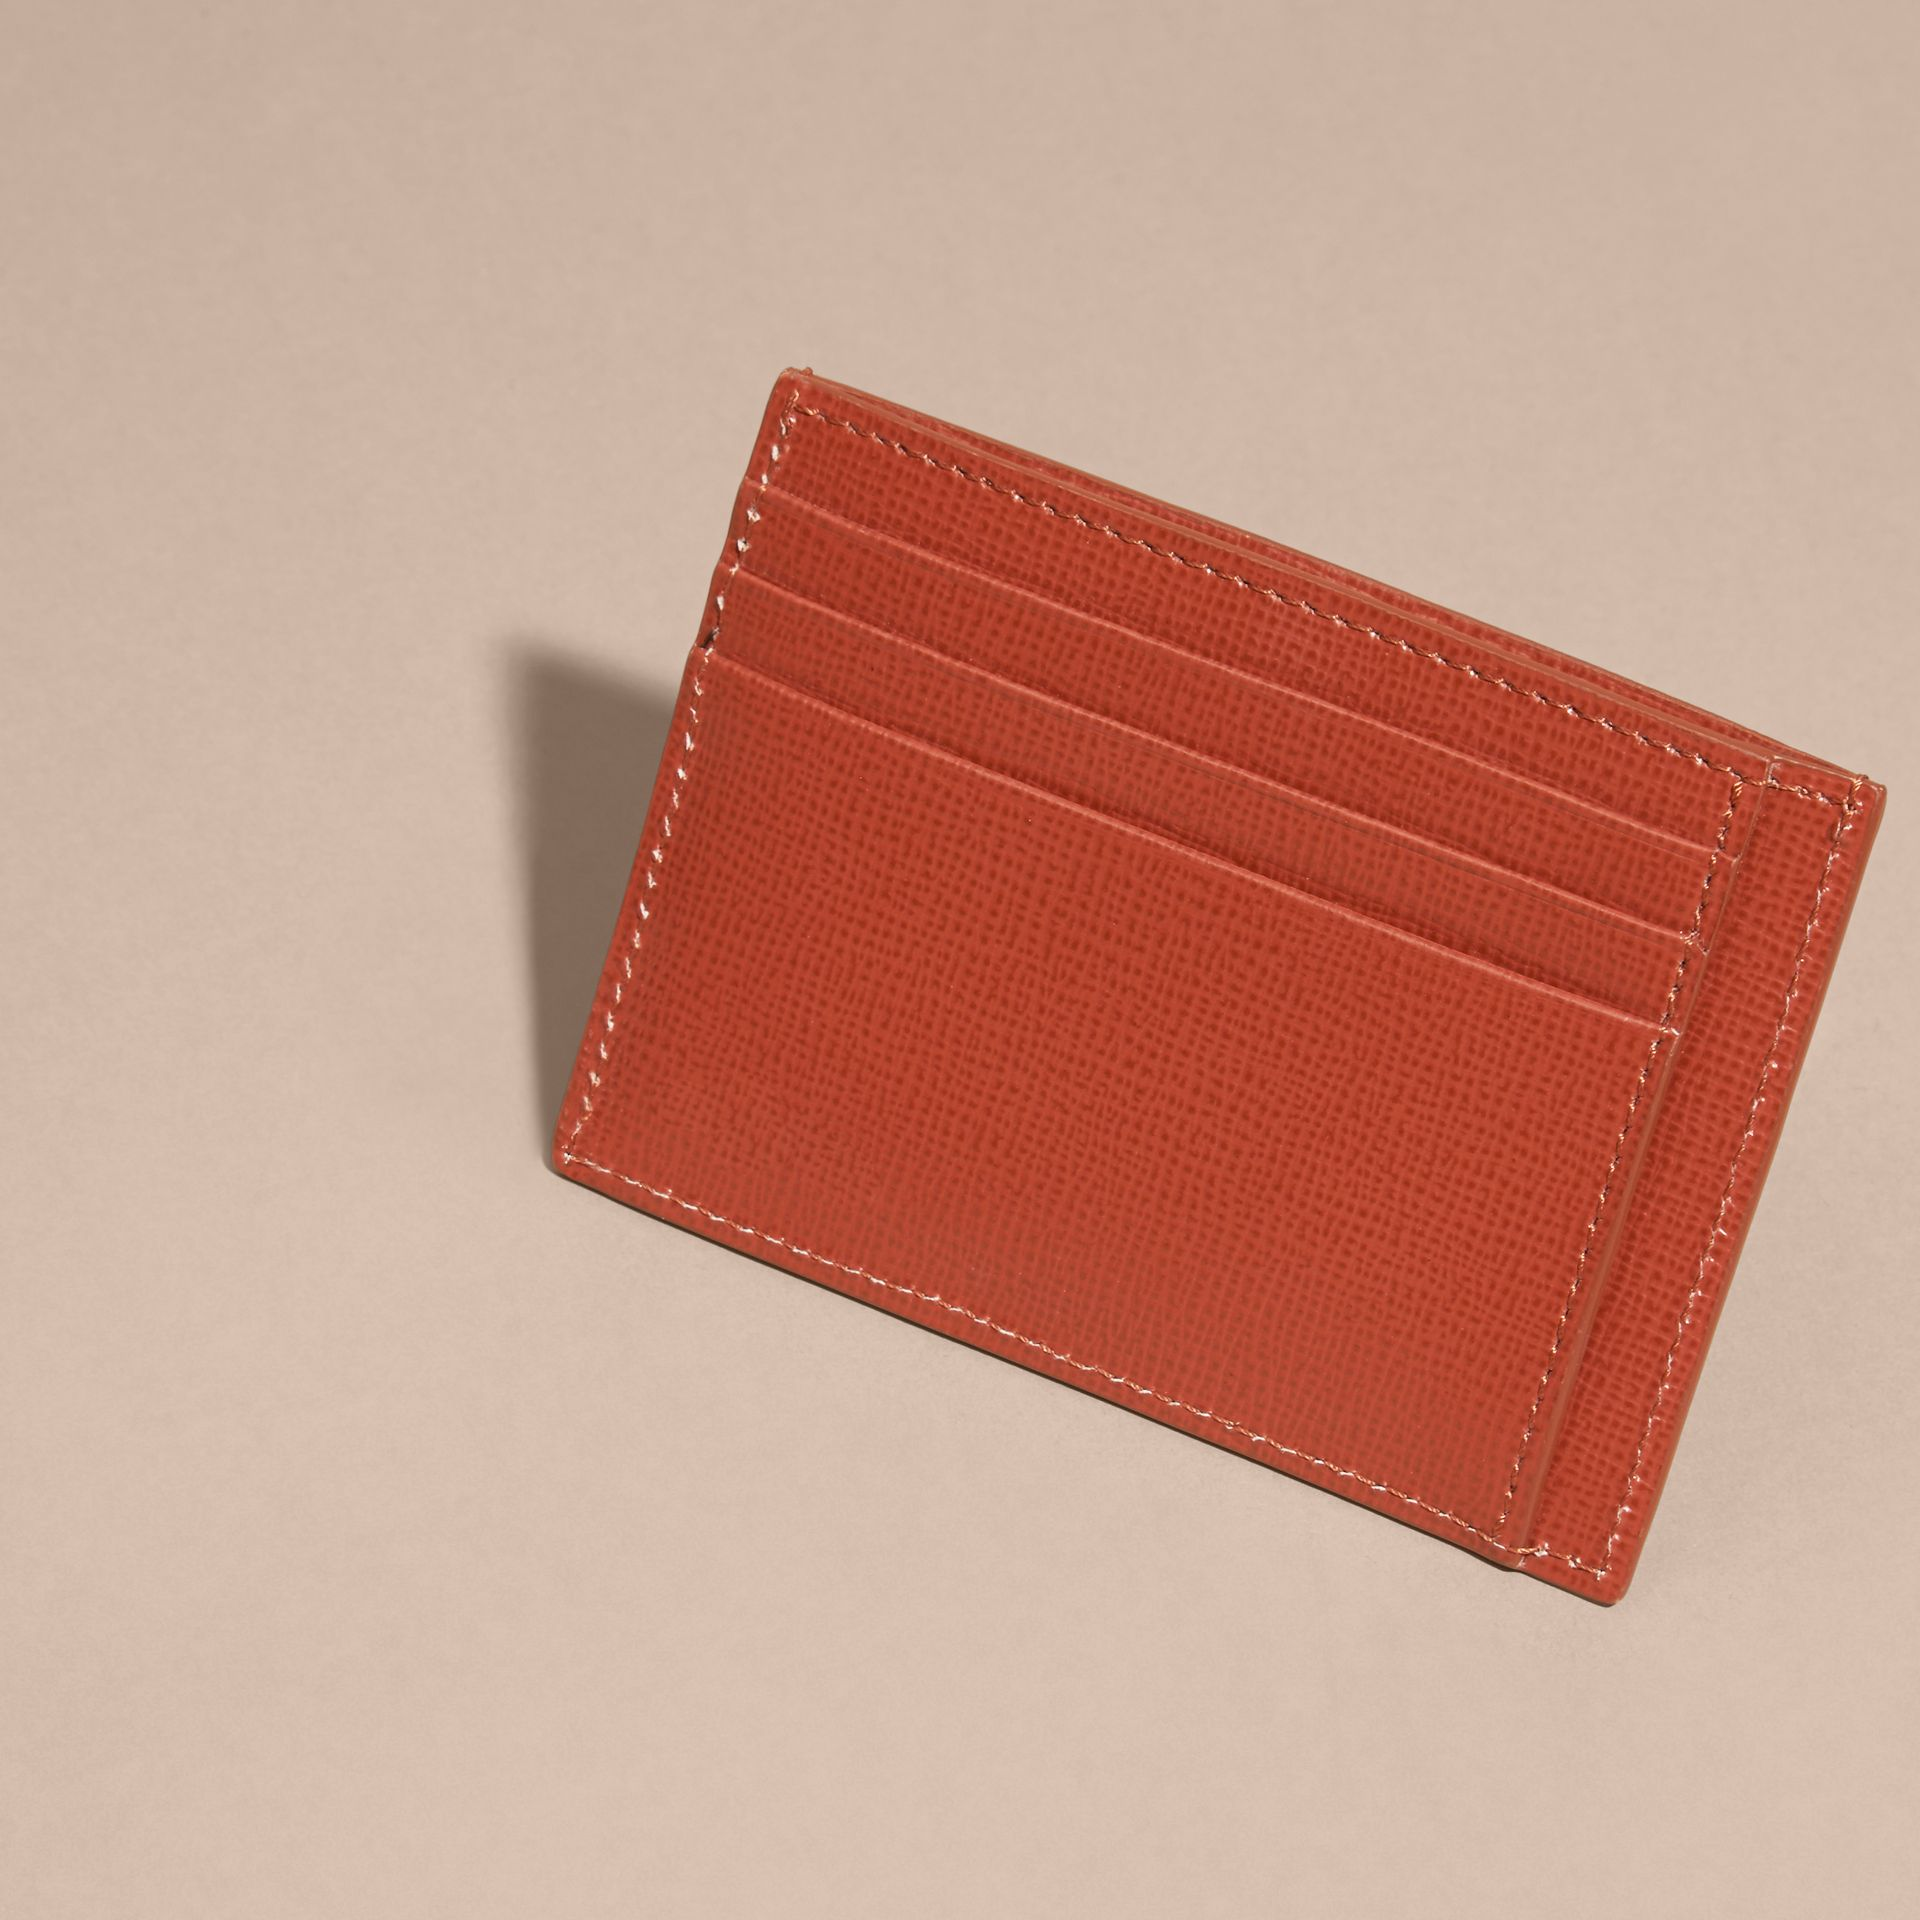 London Leather Card Case in Burnt Sienna - gallery image 2